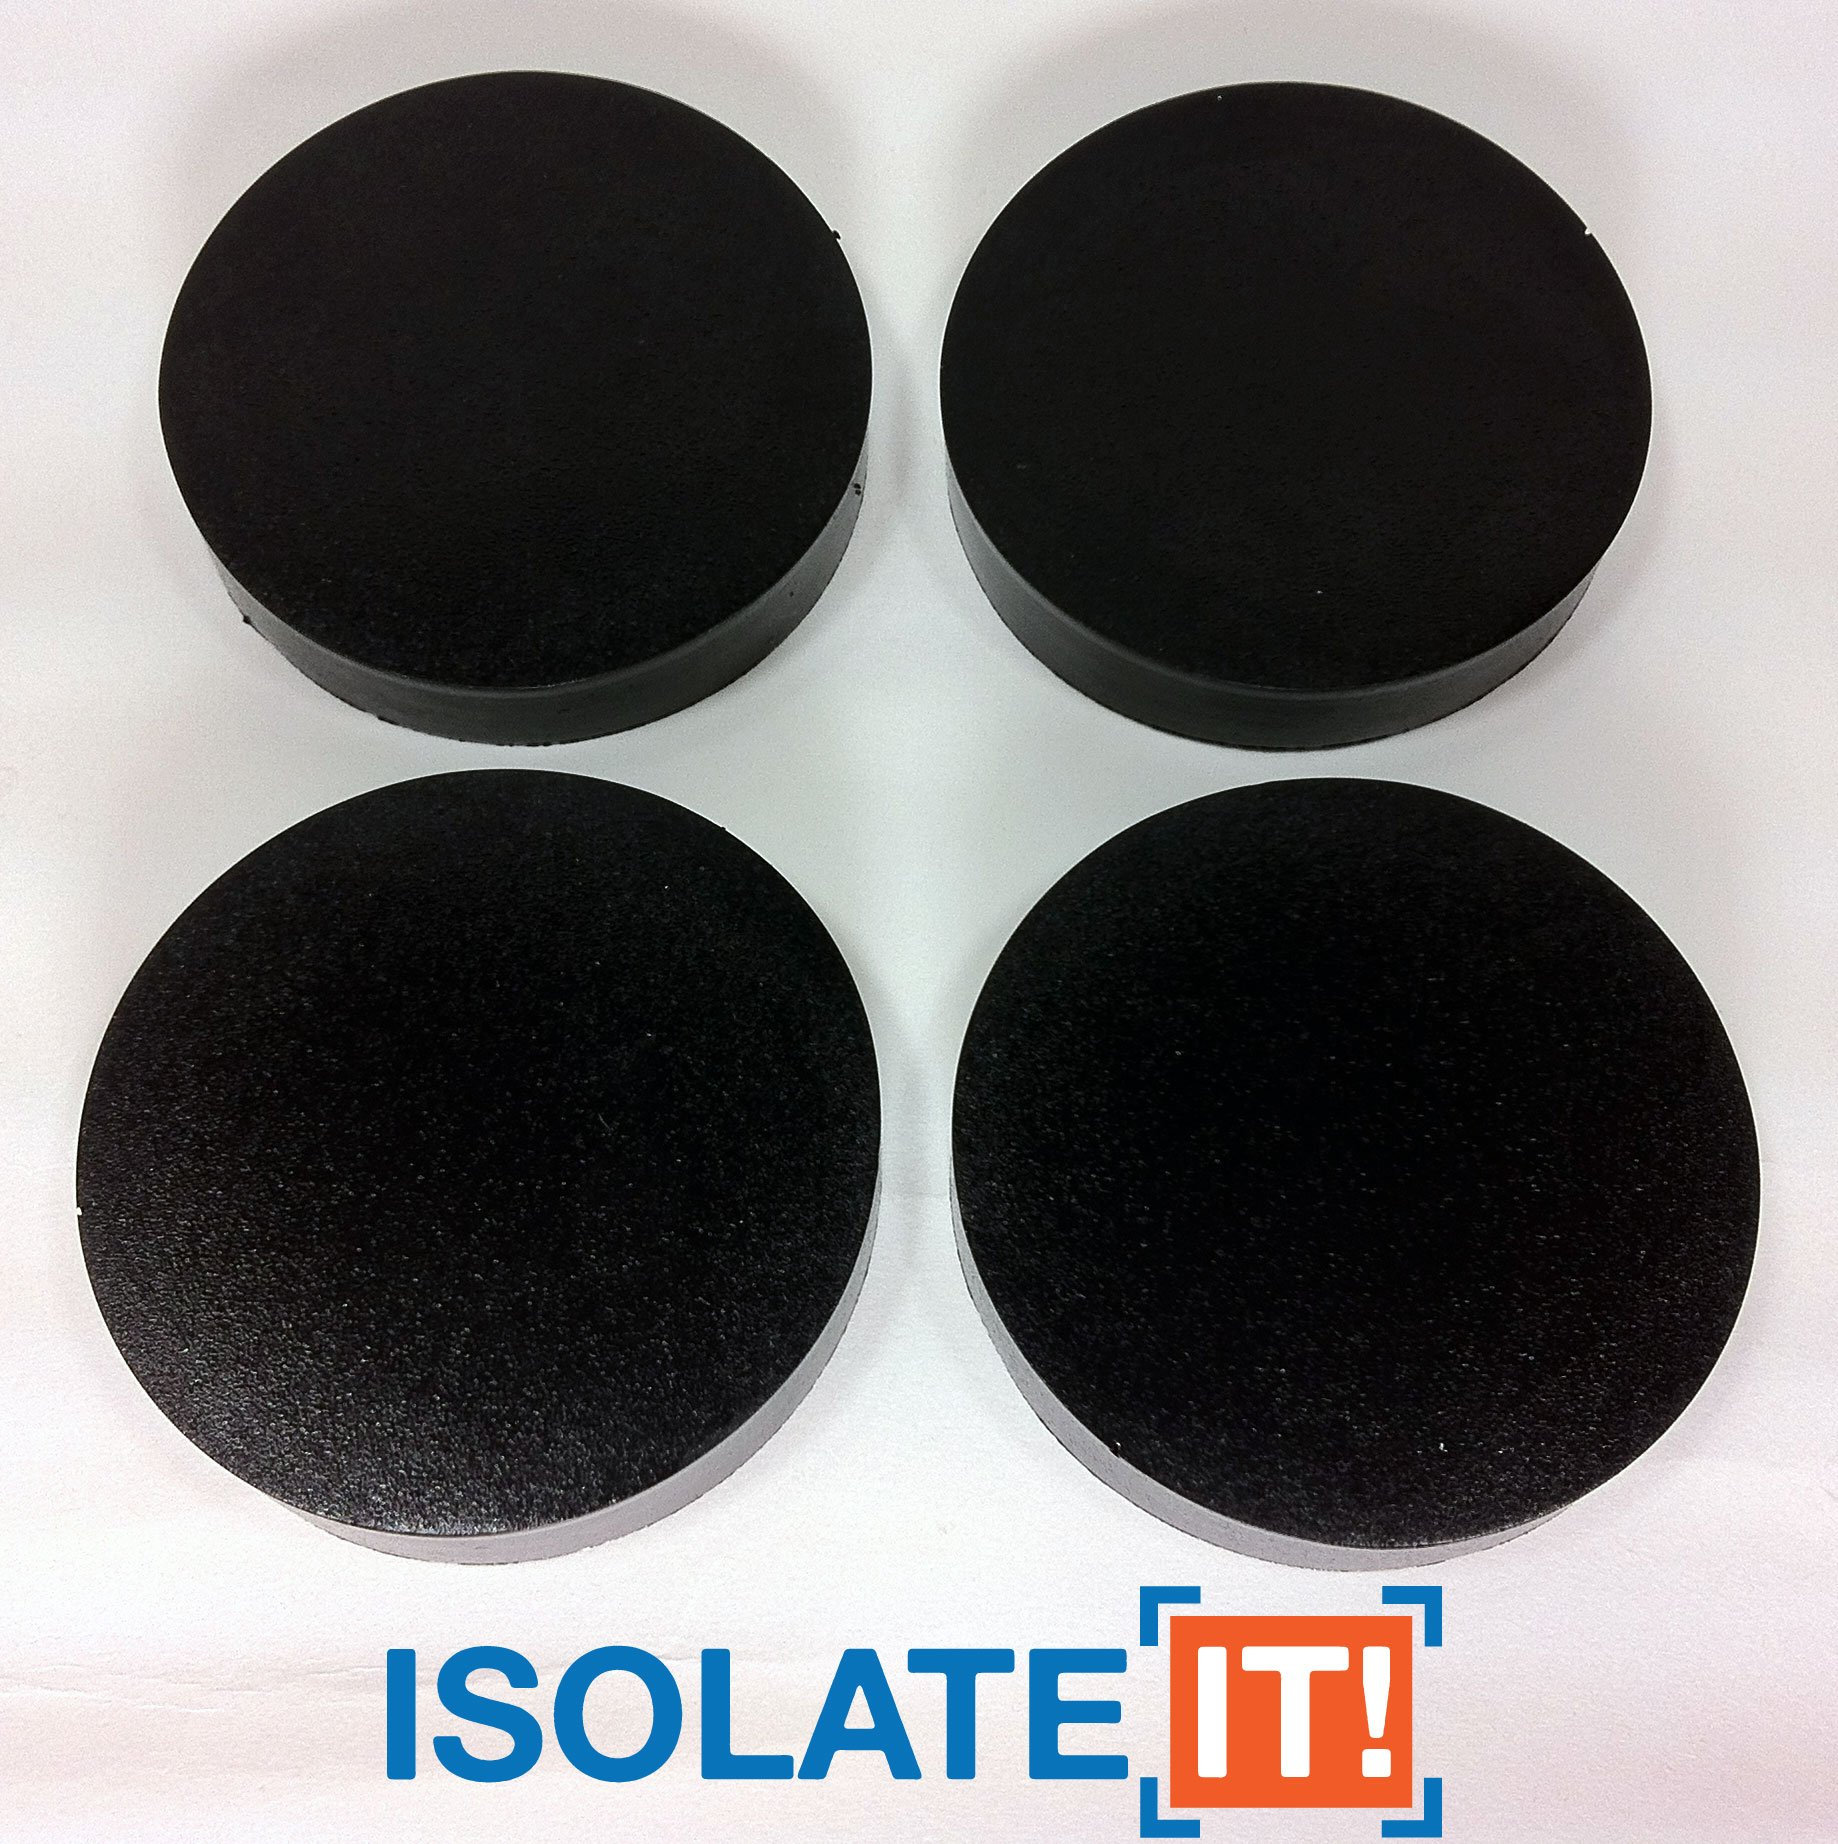 Isolate It: Sorbothane Vibration Isolation Circular Disc Pad .5'' (1.27cm) Thick x 2.5'' (6.35cm) Dia. 30 Duro - 4 Pack